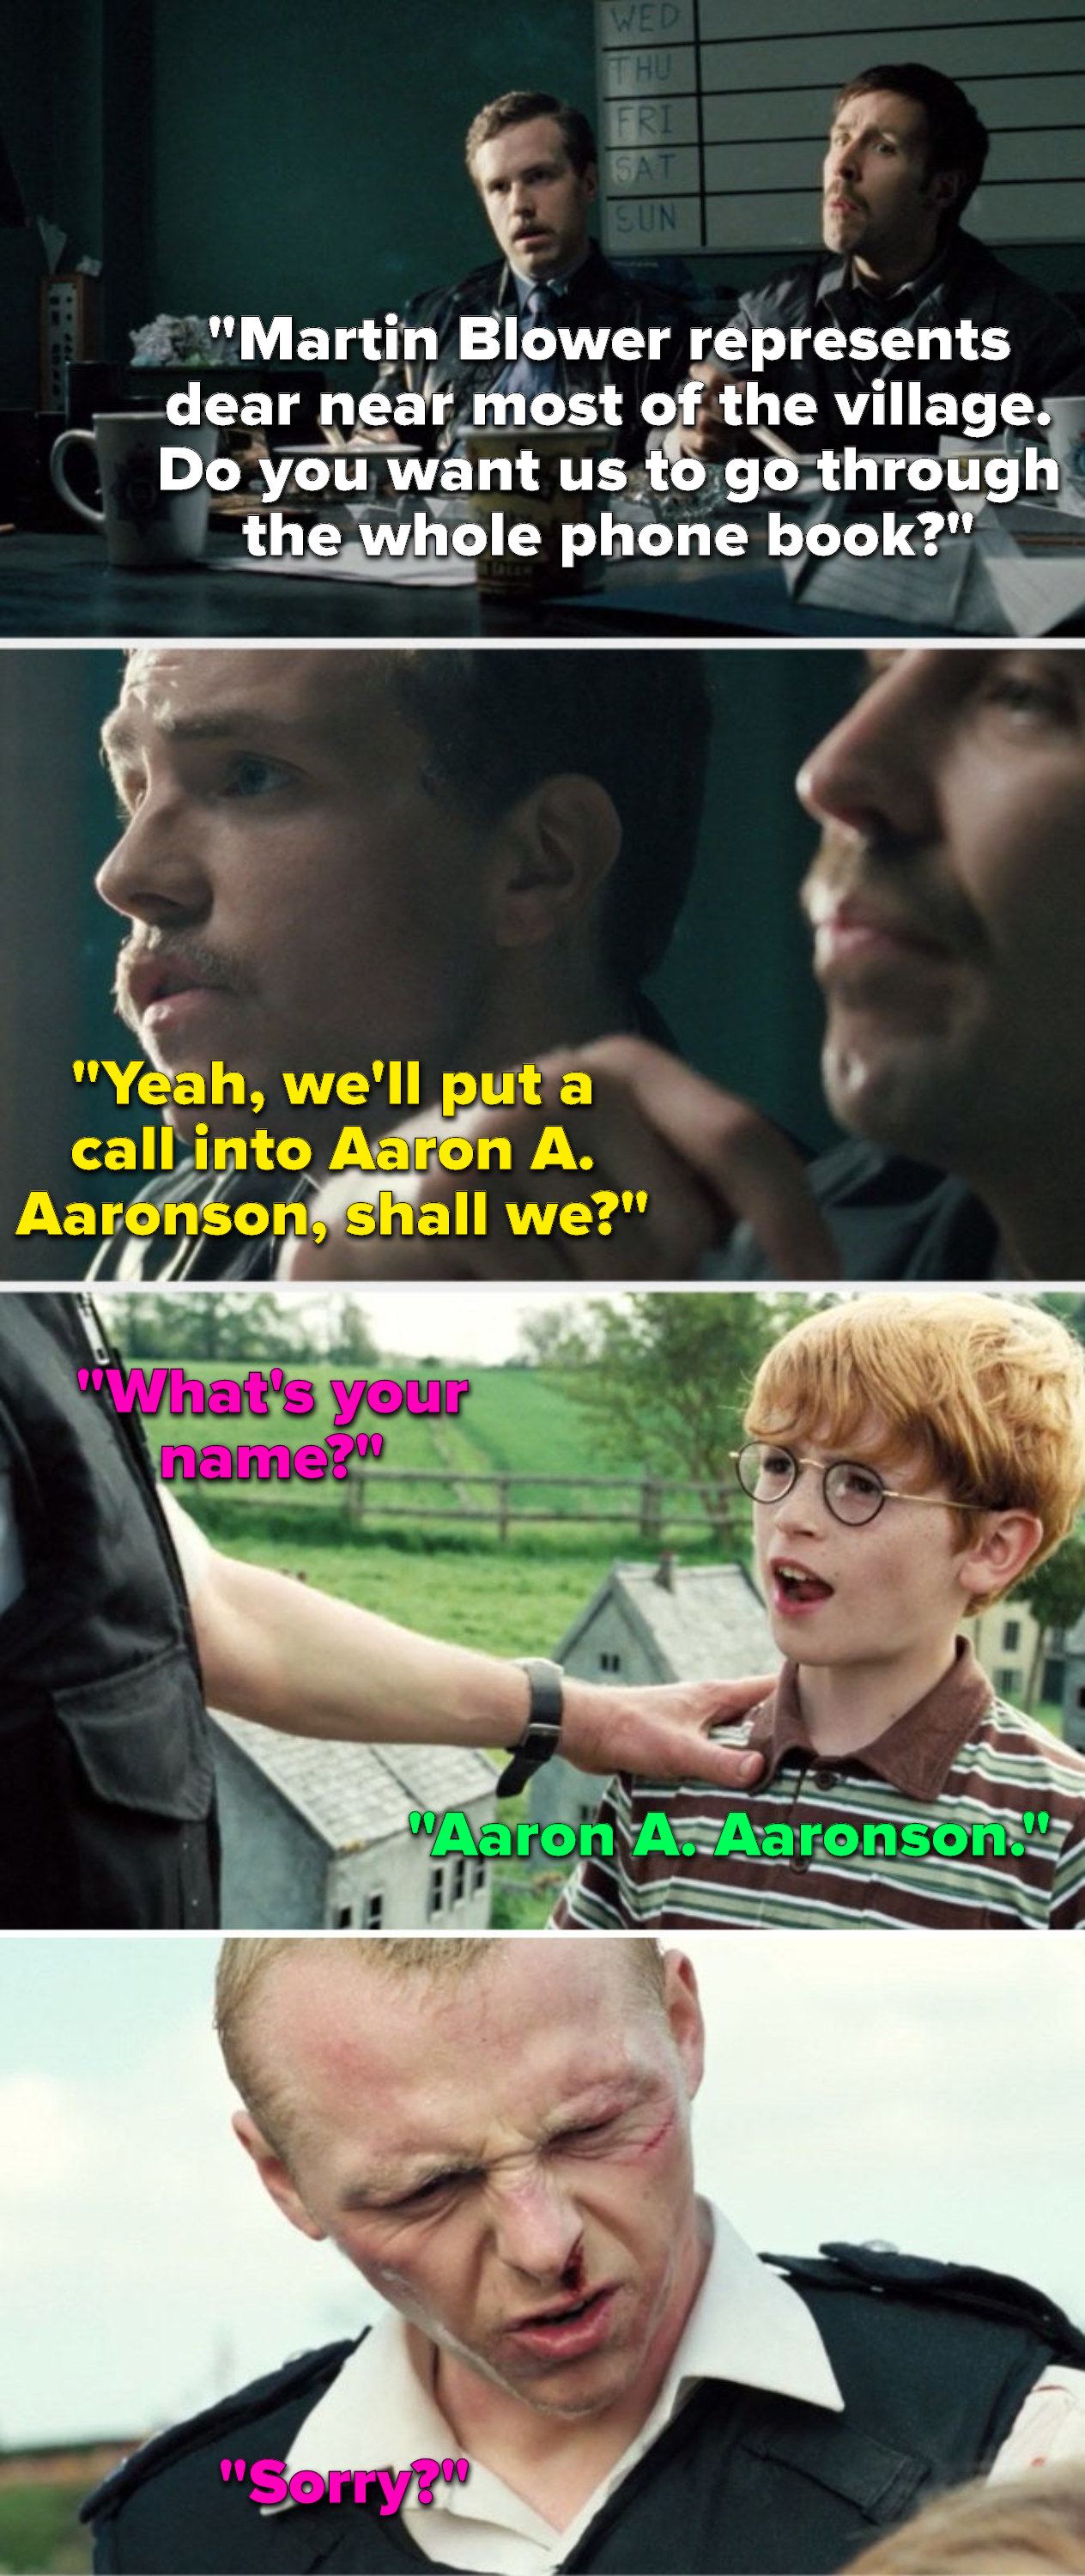 """Sergeant Andy says, """"Blower represents most of the village, do you want us to go through the phone book,"""" Constable Andy says, """"We'll call Aaron A Aaronson,"""" then at the end of the movie, the kid Angel's talking to says his name is """"Aaron A Aaronson"""""""